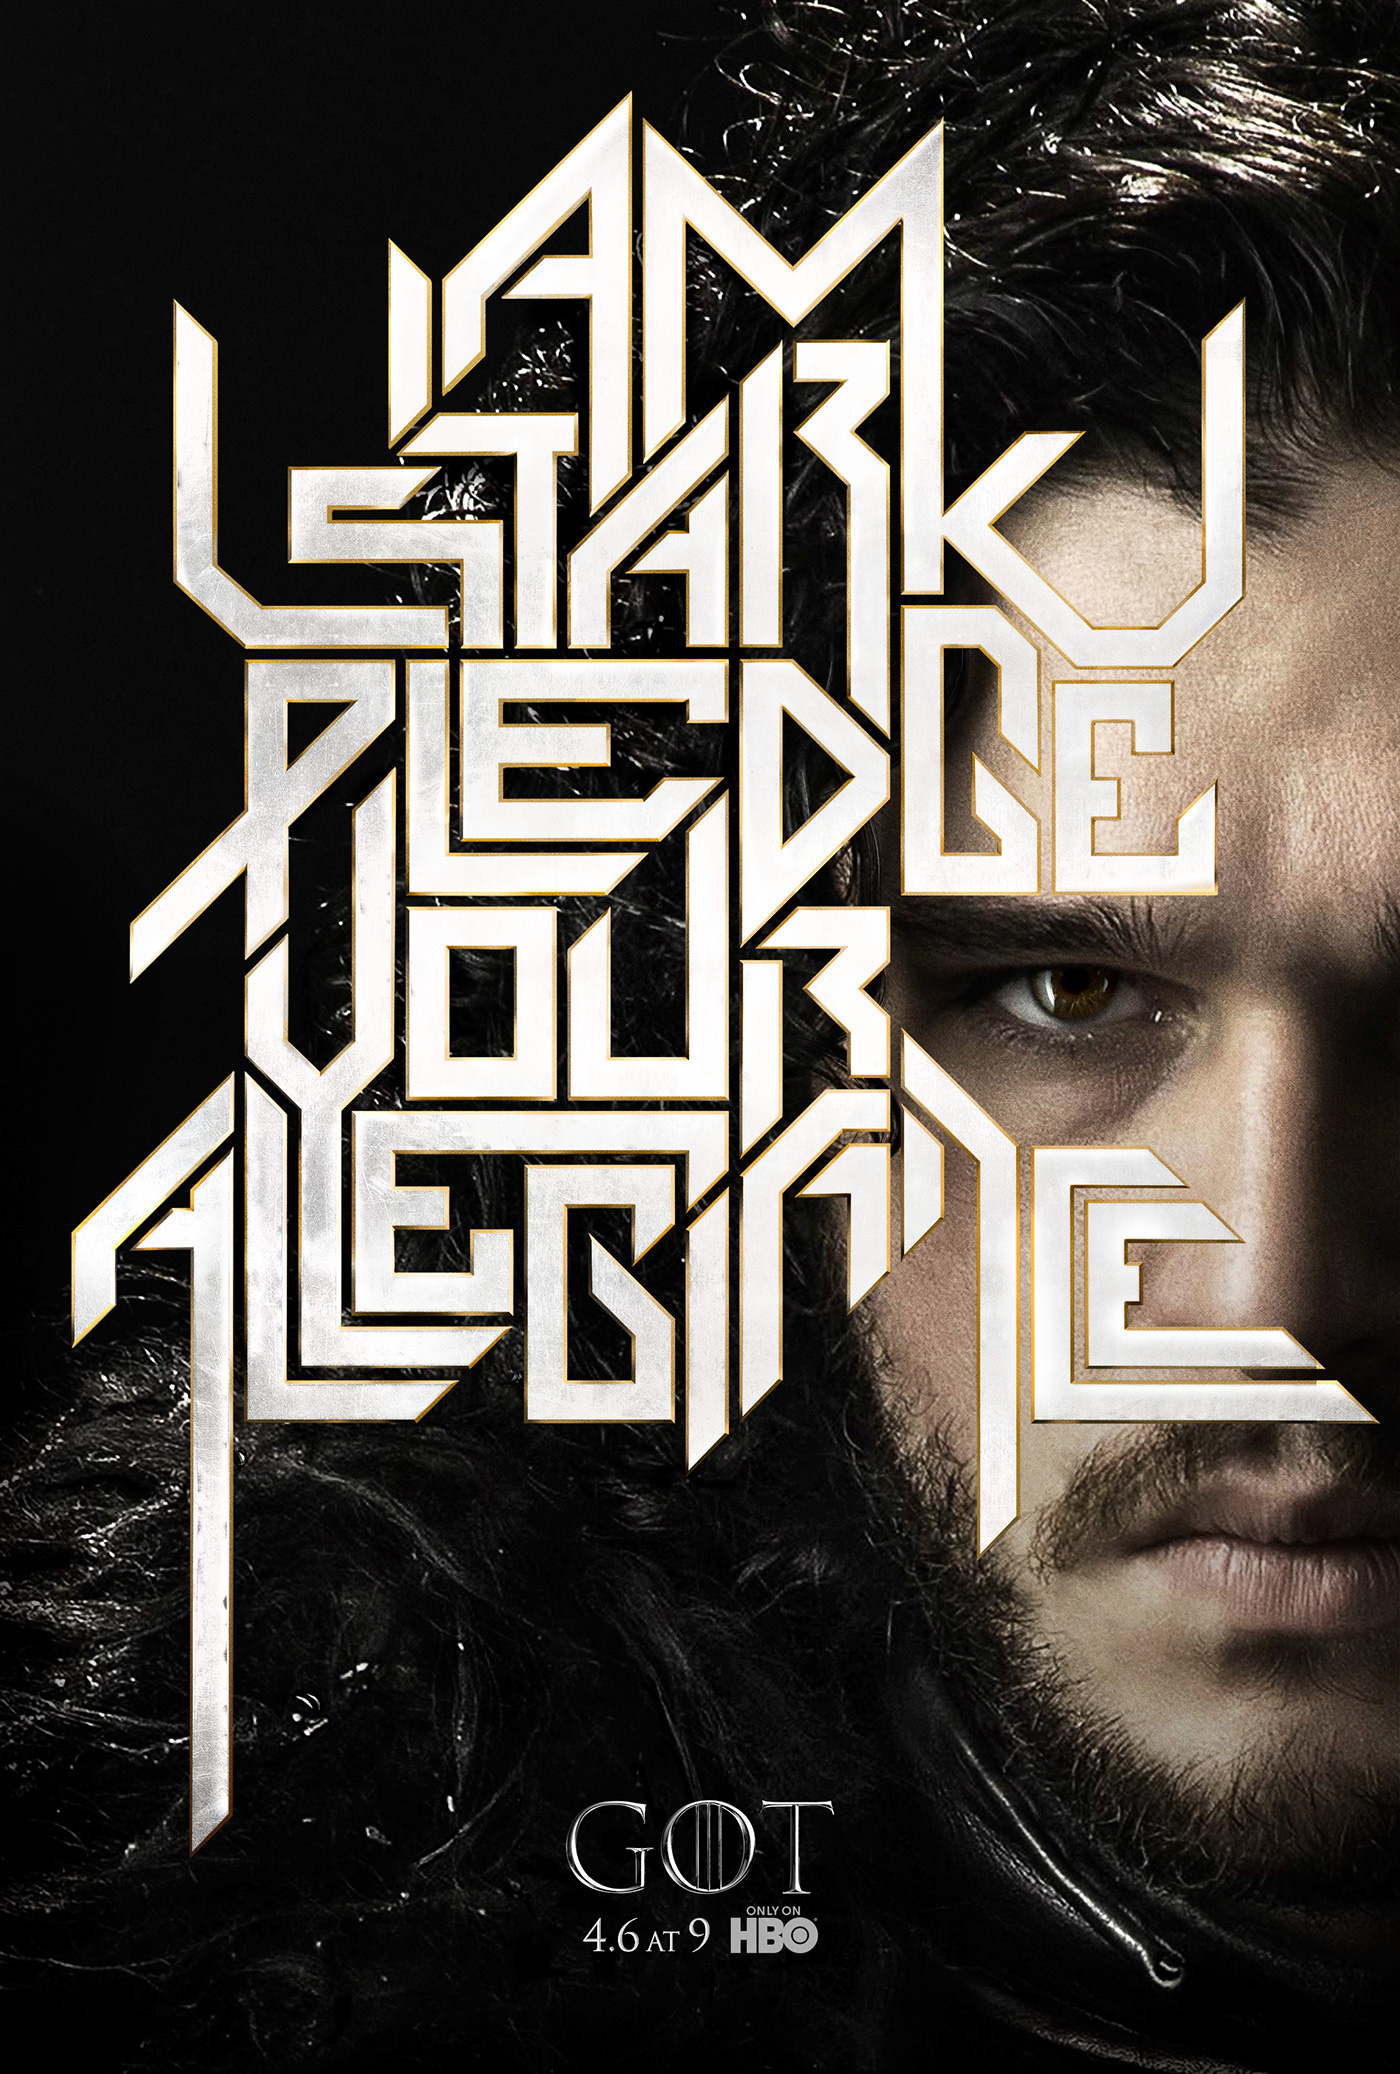 NATE LAKE : HBO | GAME OF THRONES